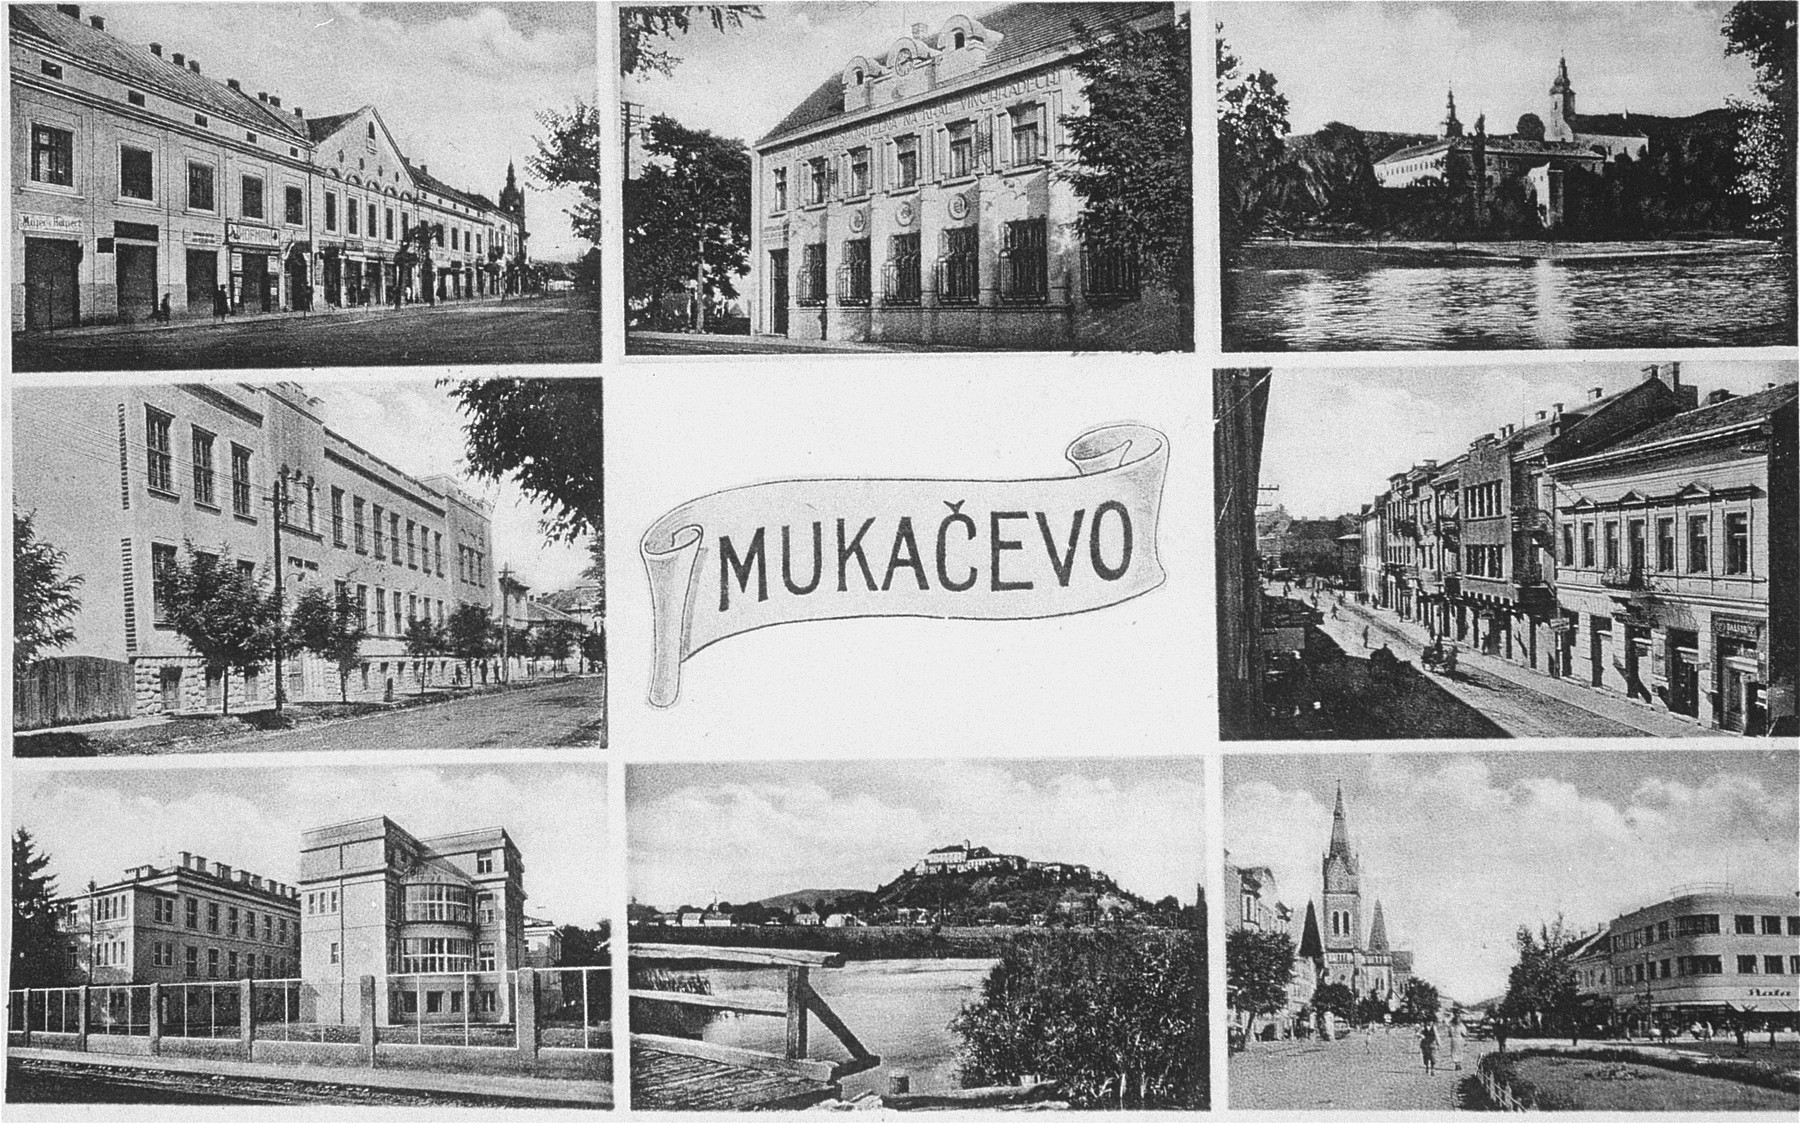 A collage of picture postcards depicting sights in Munkachevo.